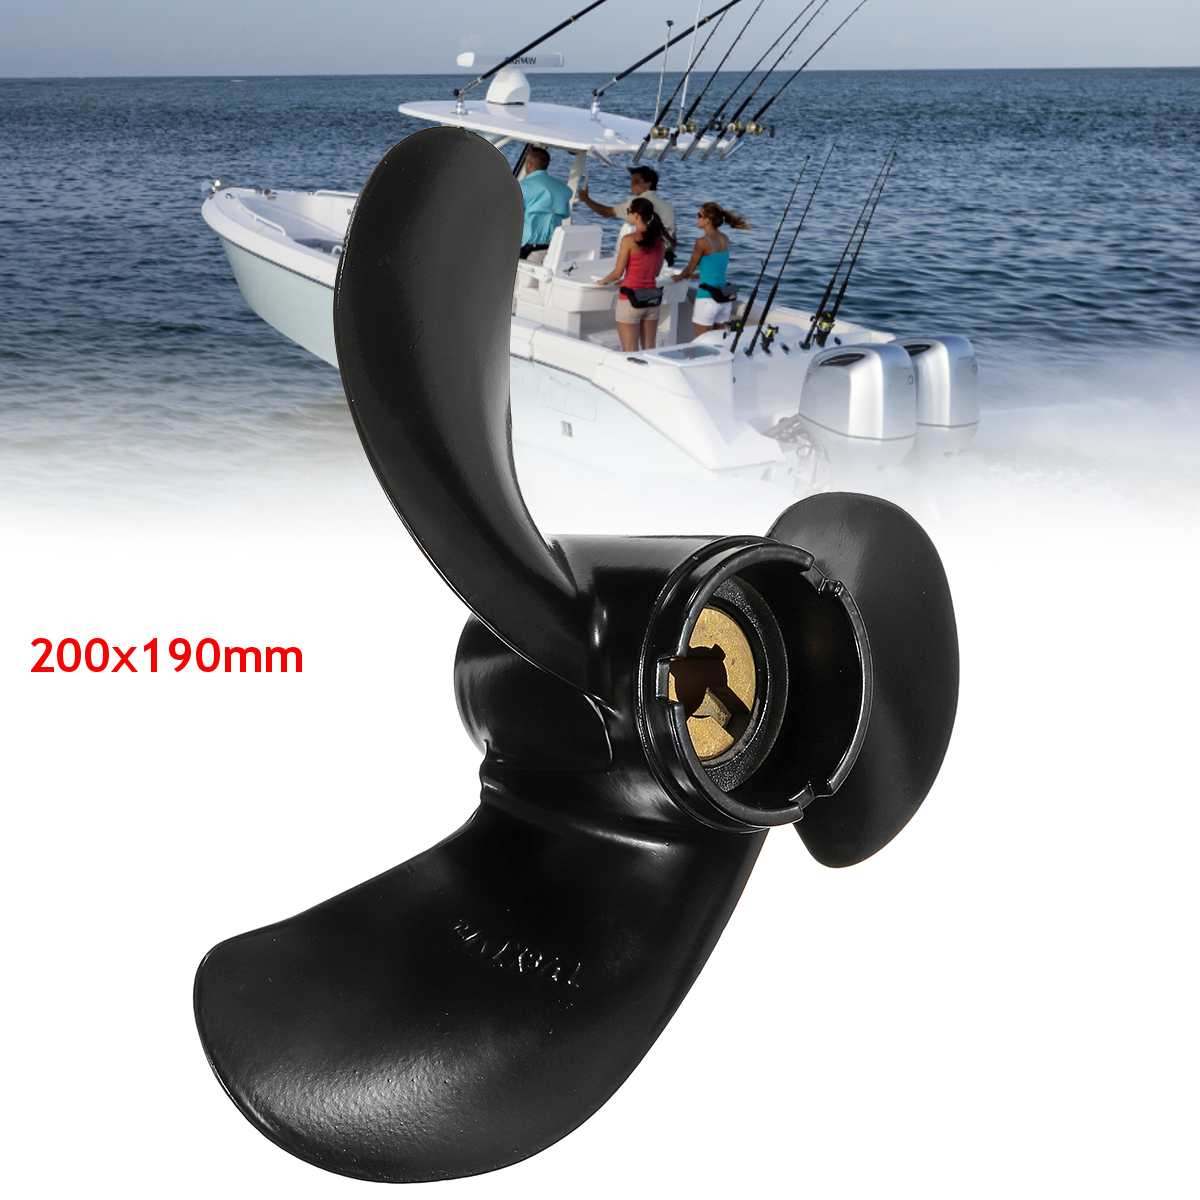 6011 079 07P 7 7/8 x 7 1/2 Boat Propeller For Honda Boat Outboard Engine 5HP Aluminum Alloy 3 Blade Black R Rotation Accessories